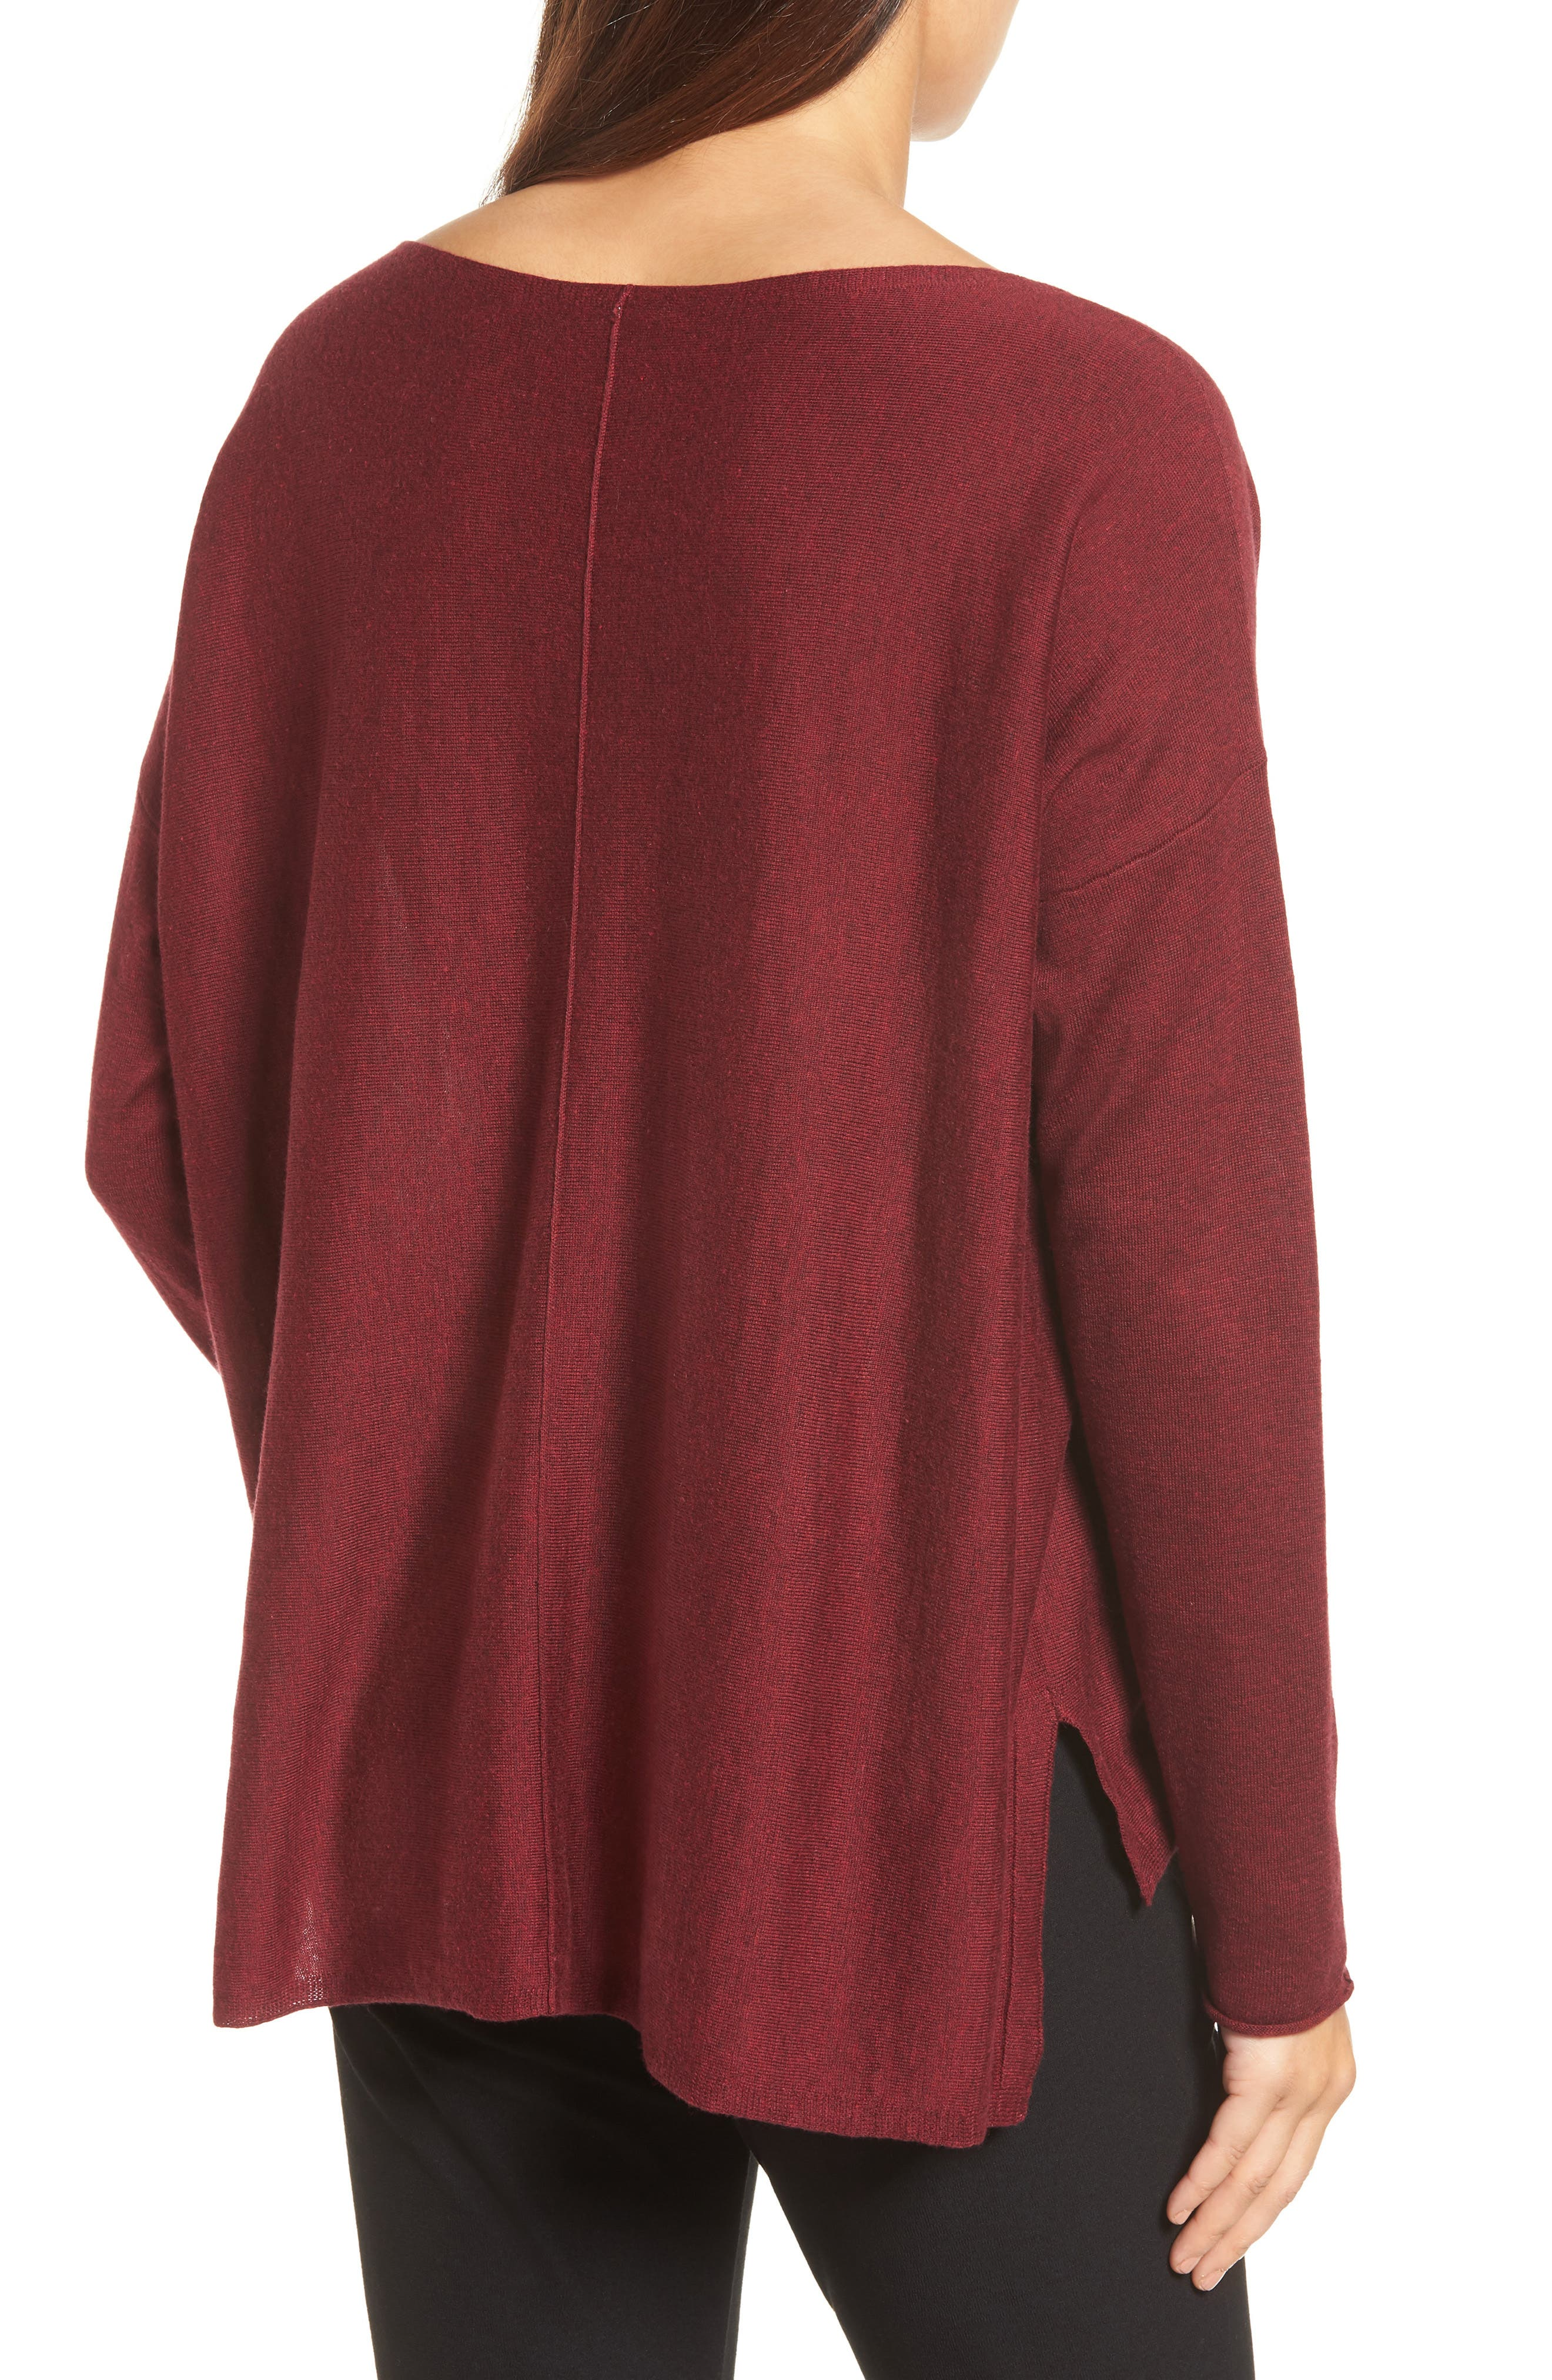 Tencel<sup>®</sup> Lyocell Blend High/Low Sweater,                             Alternate thumbnail 2, color,                             Claret